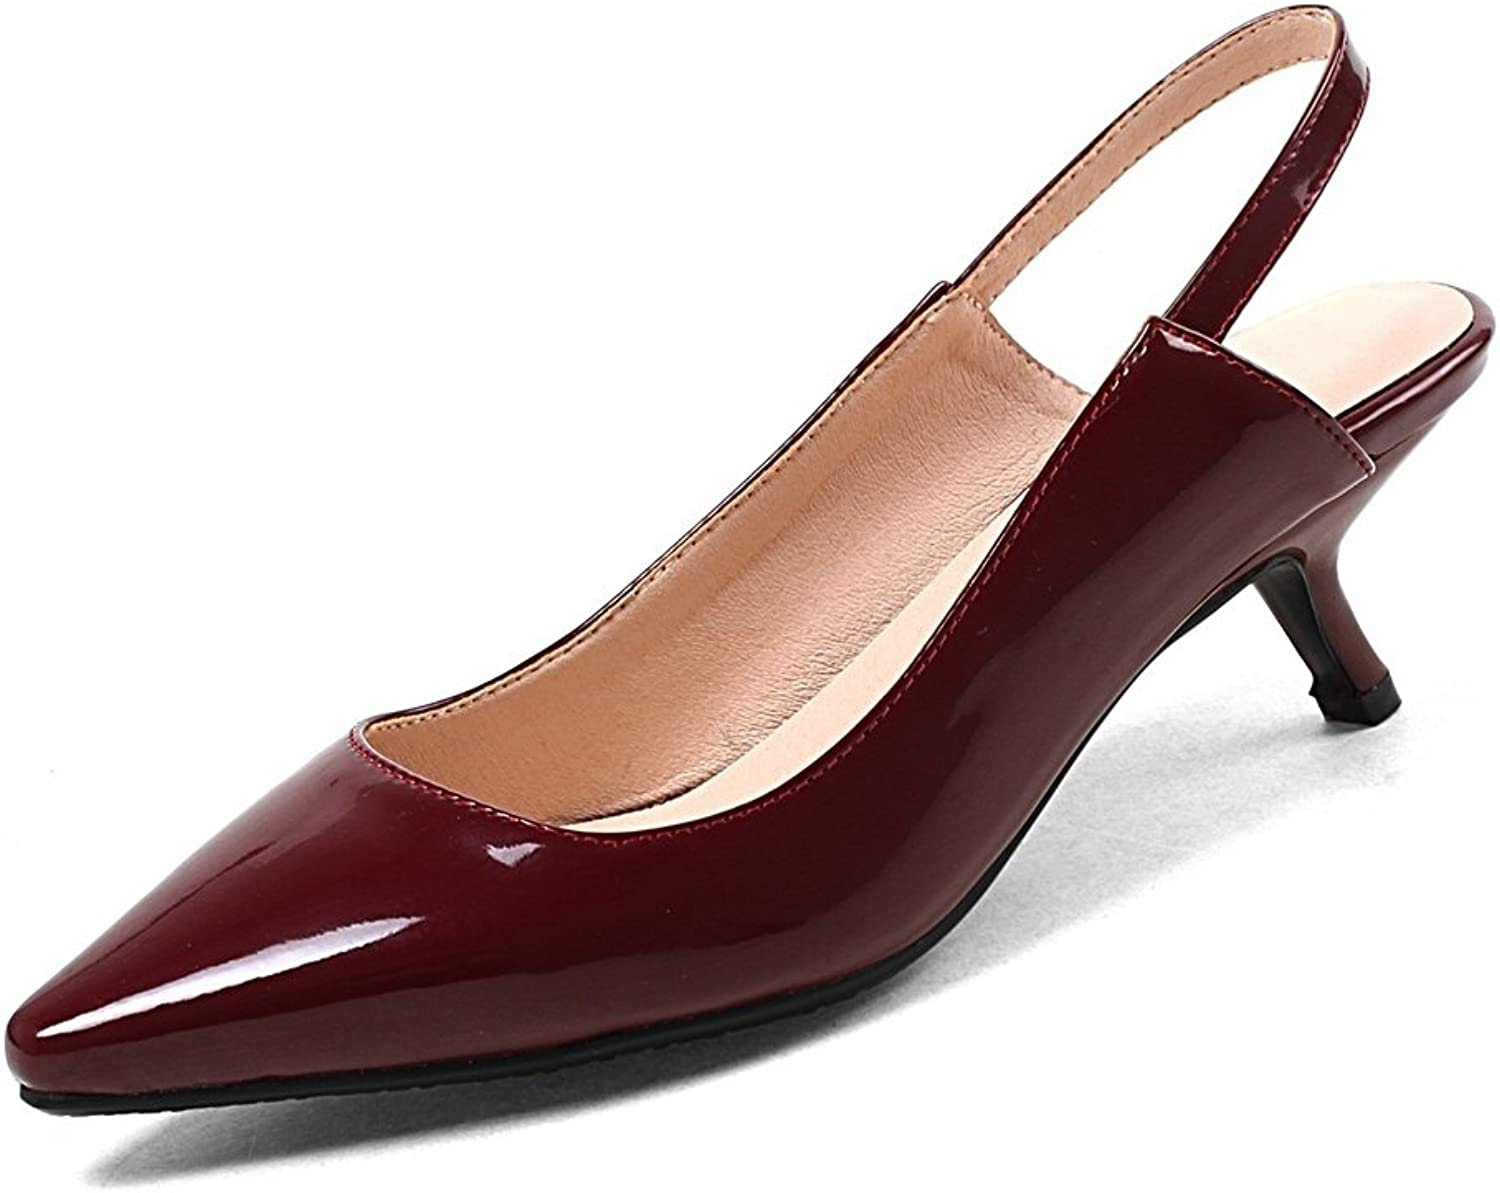 DecoStain Women's Classic Pointed Toe Patent Leather Slingbacks Slip-on Mid Thin Heels Daily Working Pumps shoes